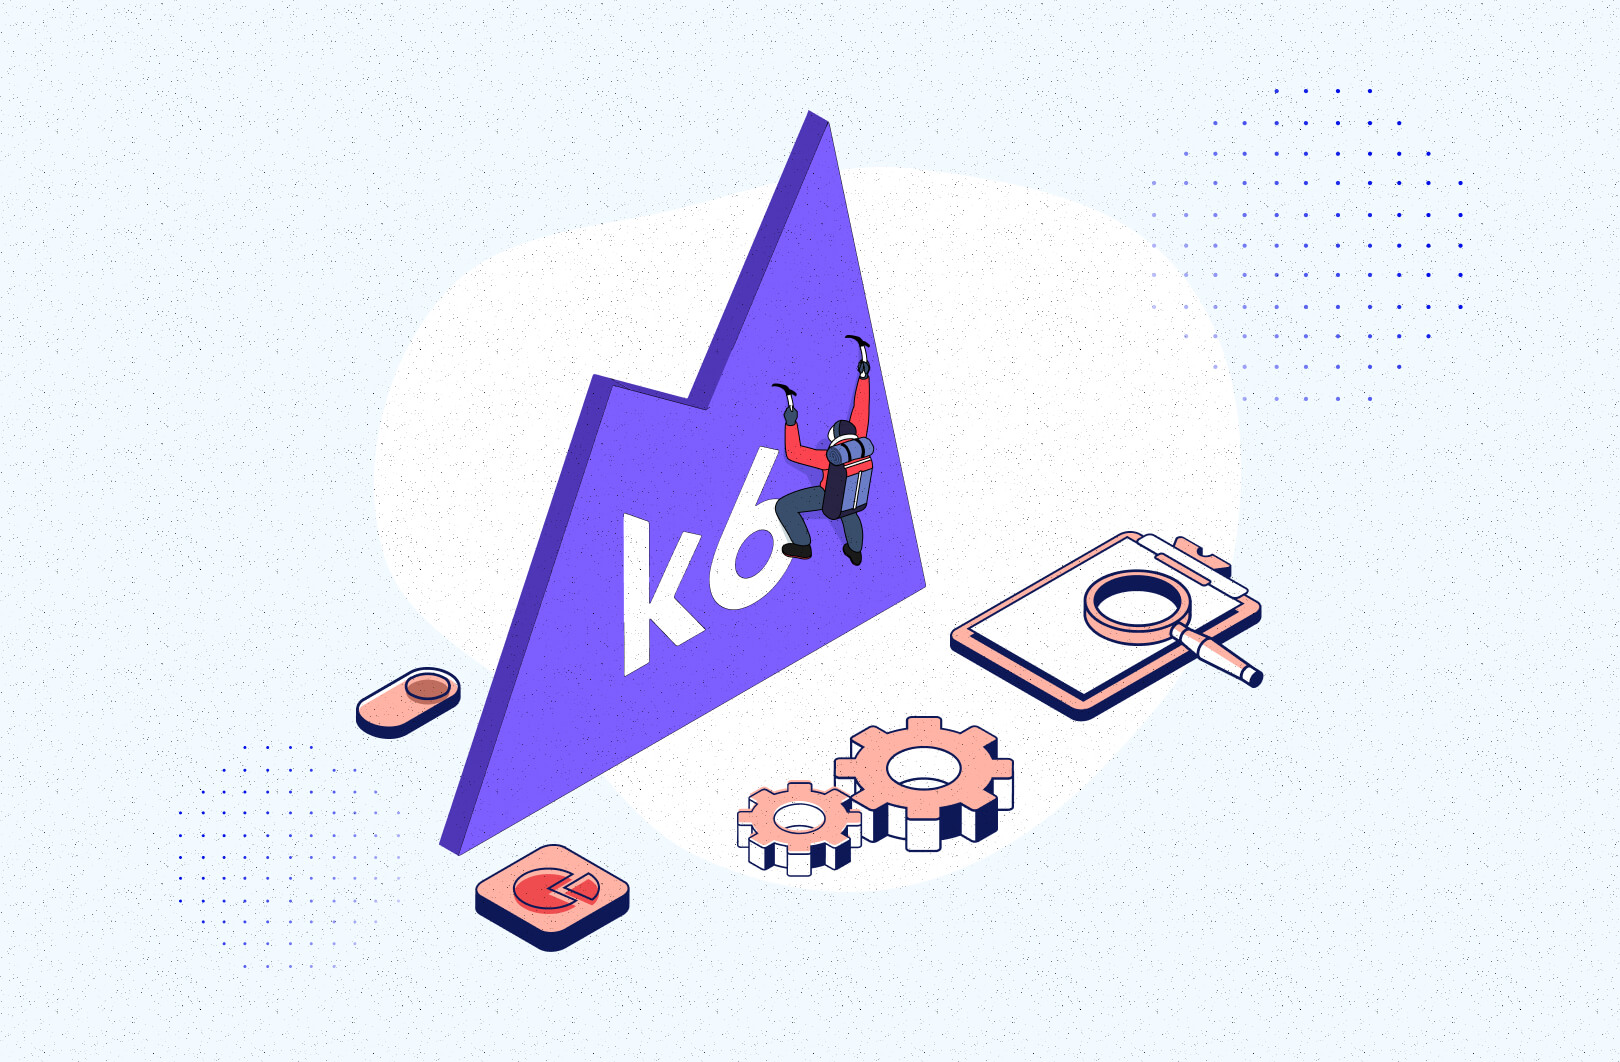 How to do performance testing using the k6 tool? Prepare and implement like an absolute pro